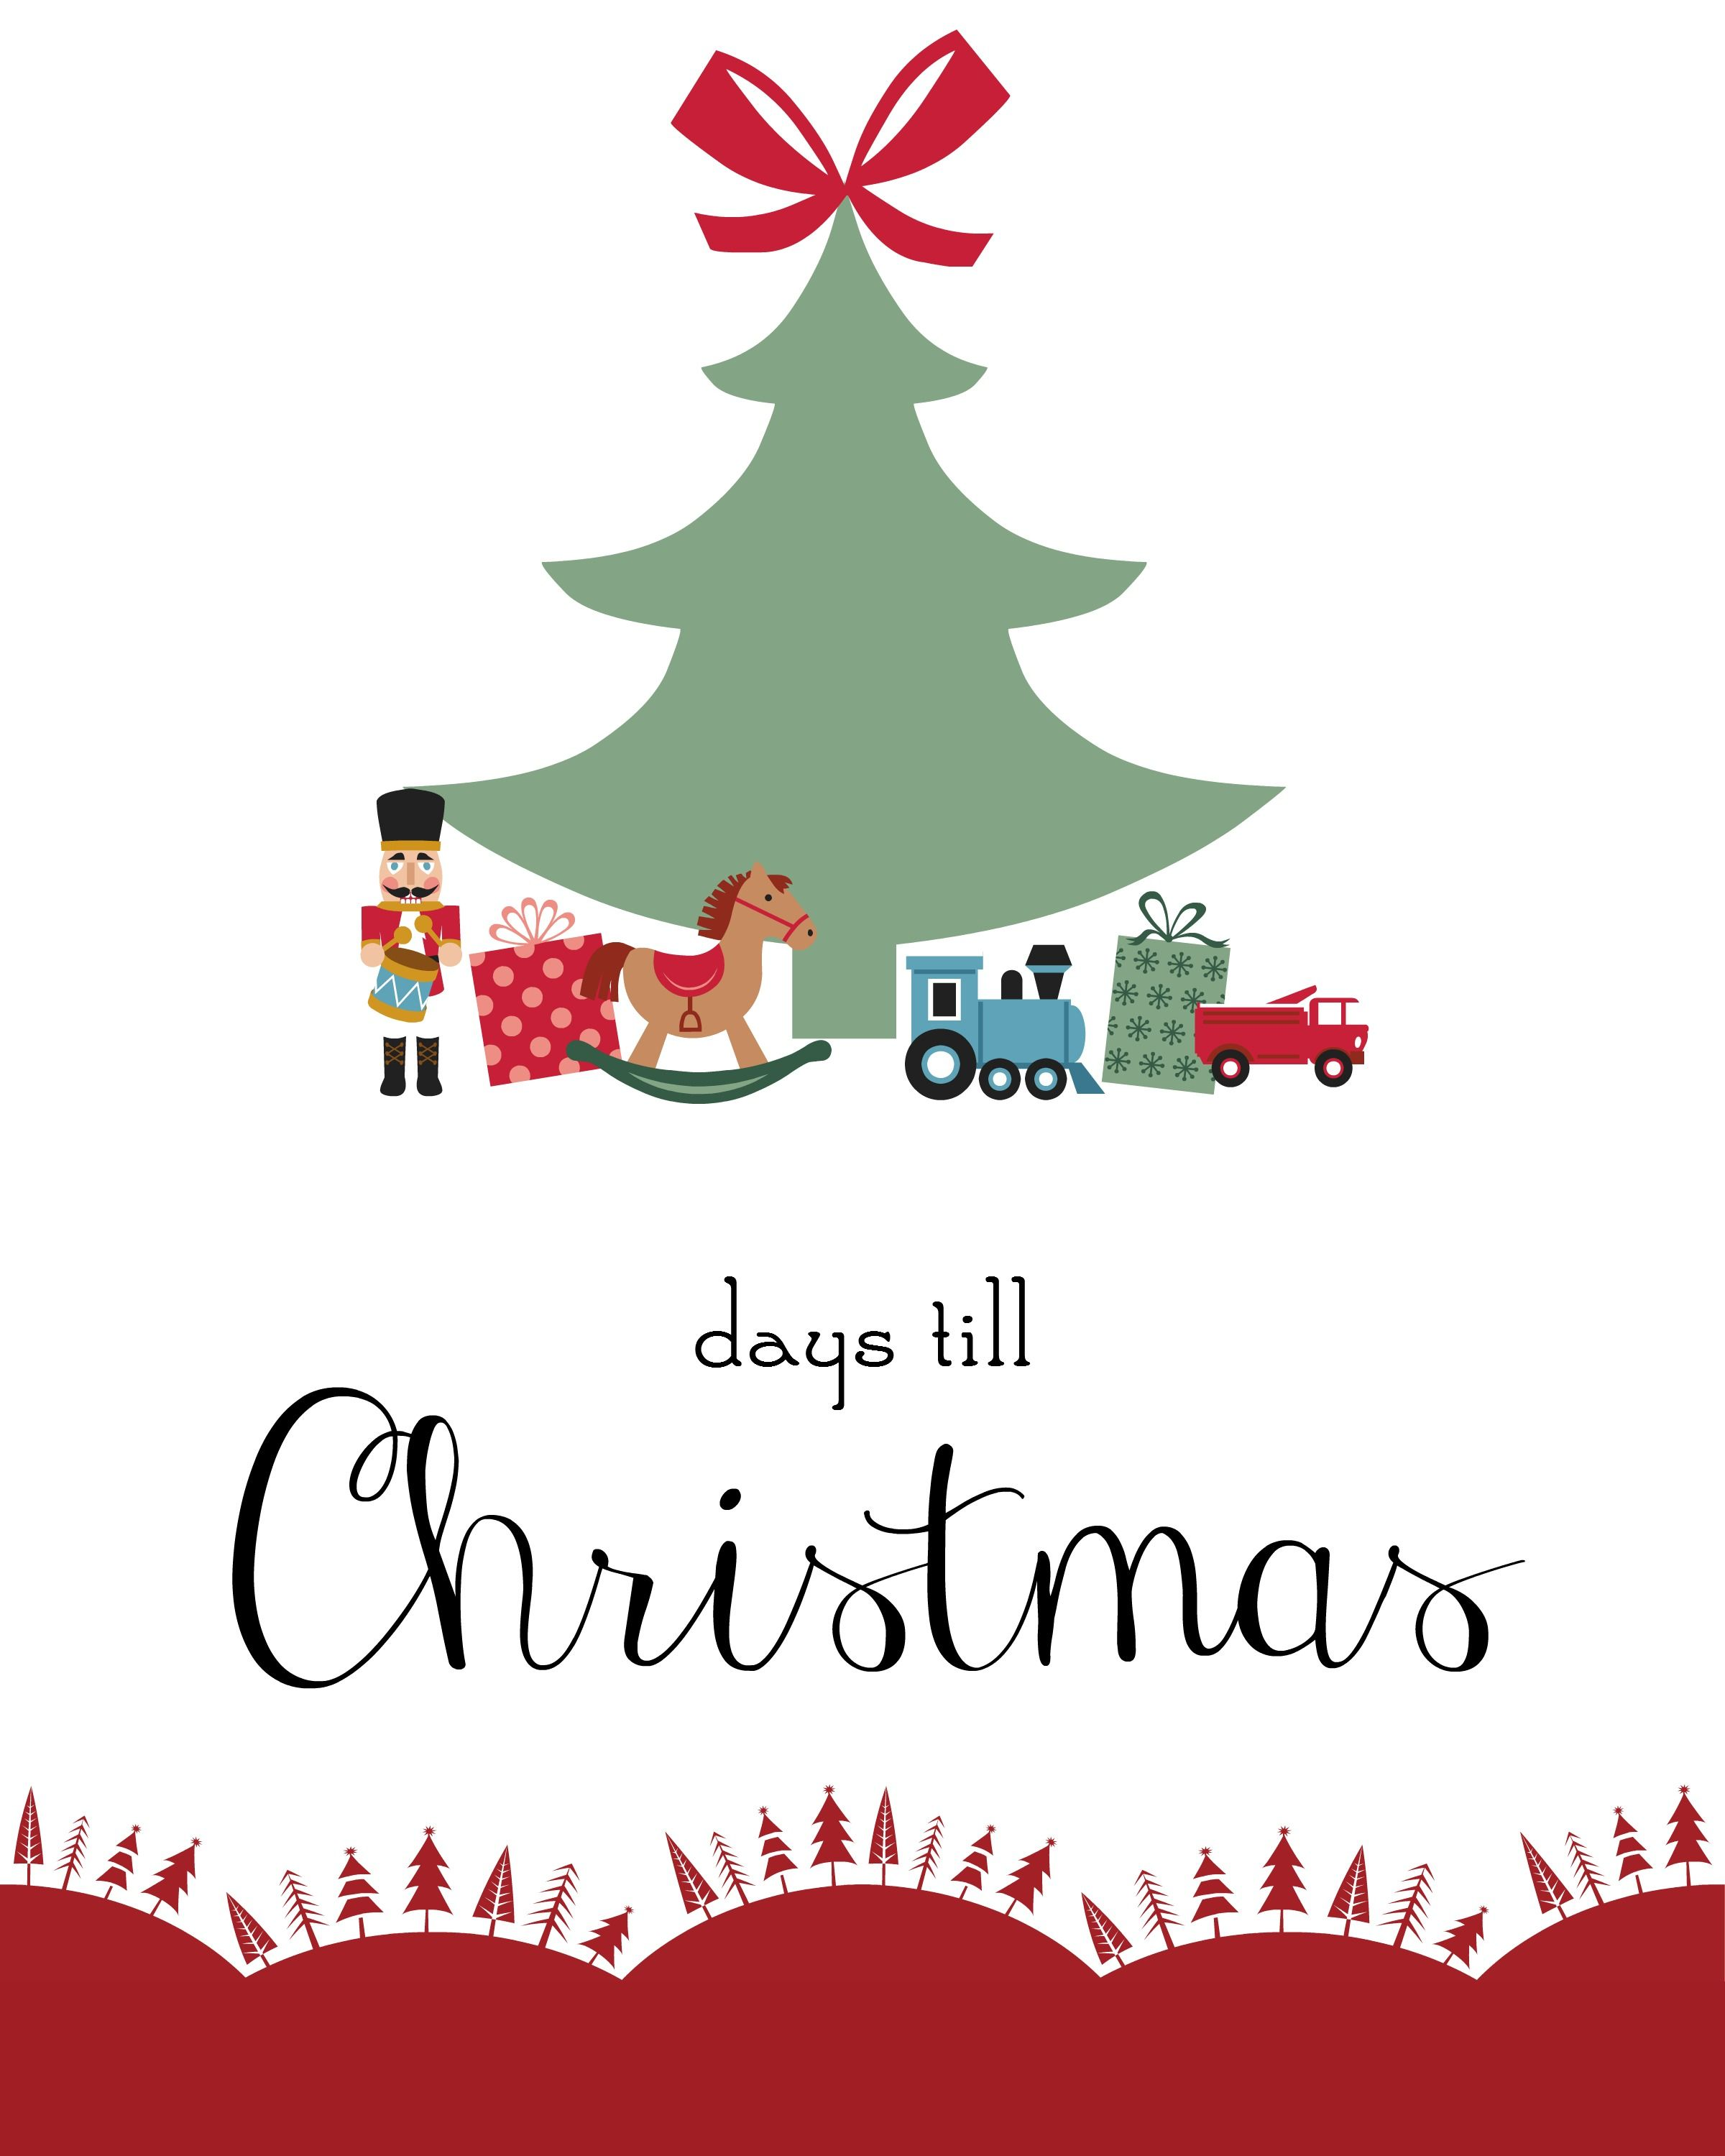 Days Until Christmas Printable.Only 17 Days Till Christmas A Free Printable Christmas